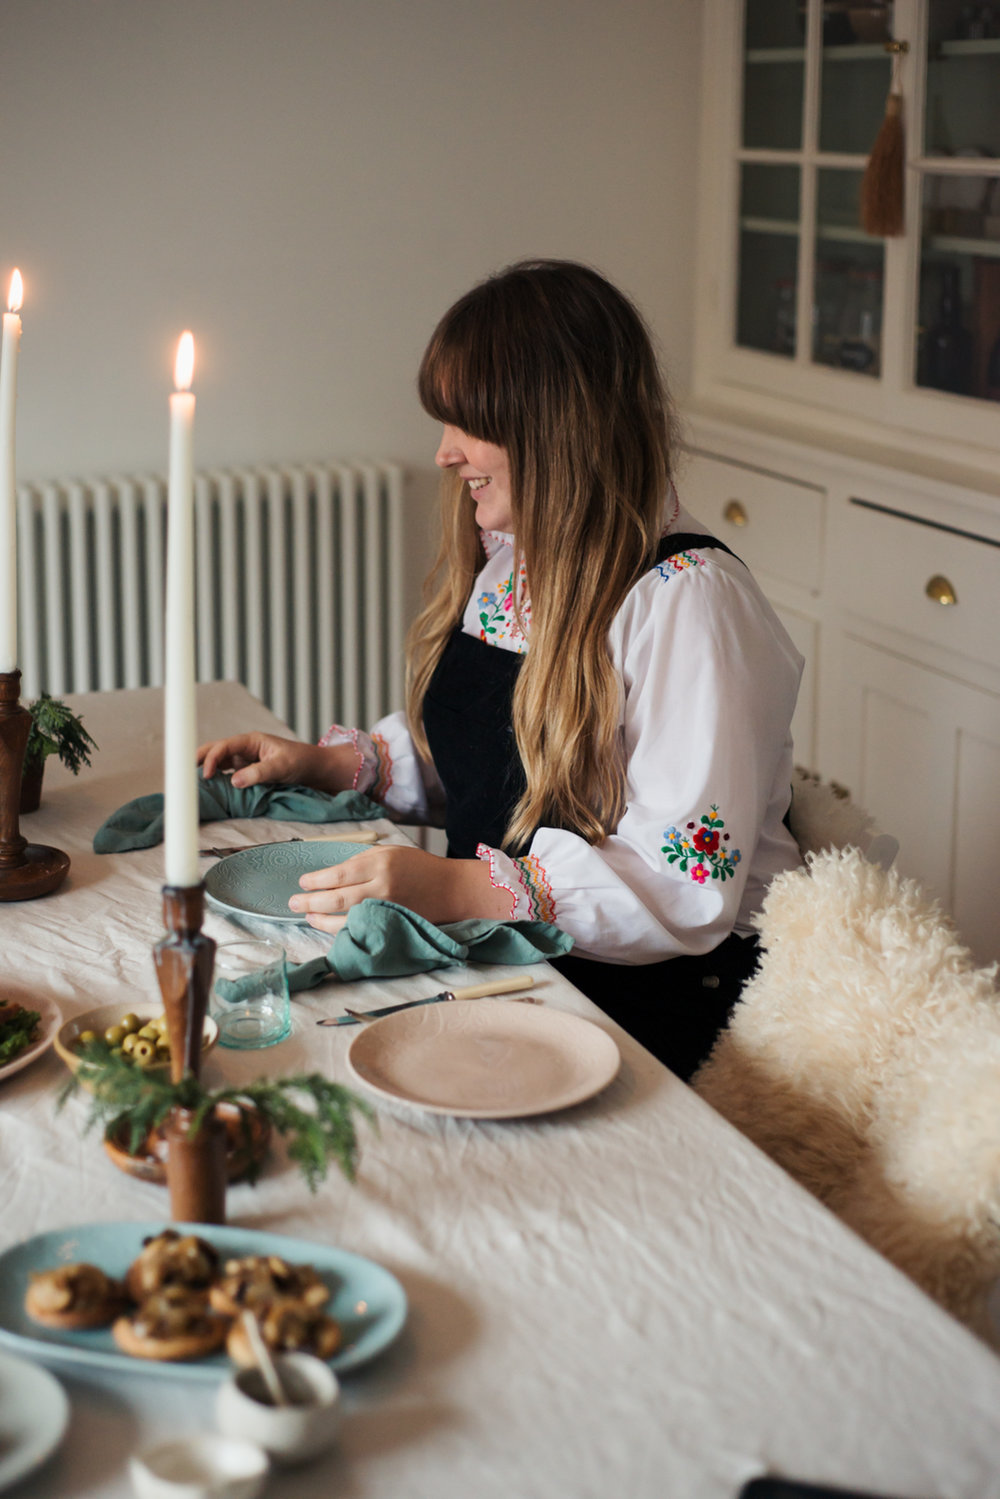 Food with friends: a winter tonic. With Denby | Hannah Bullivant